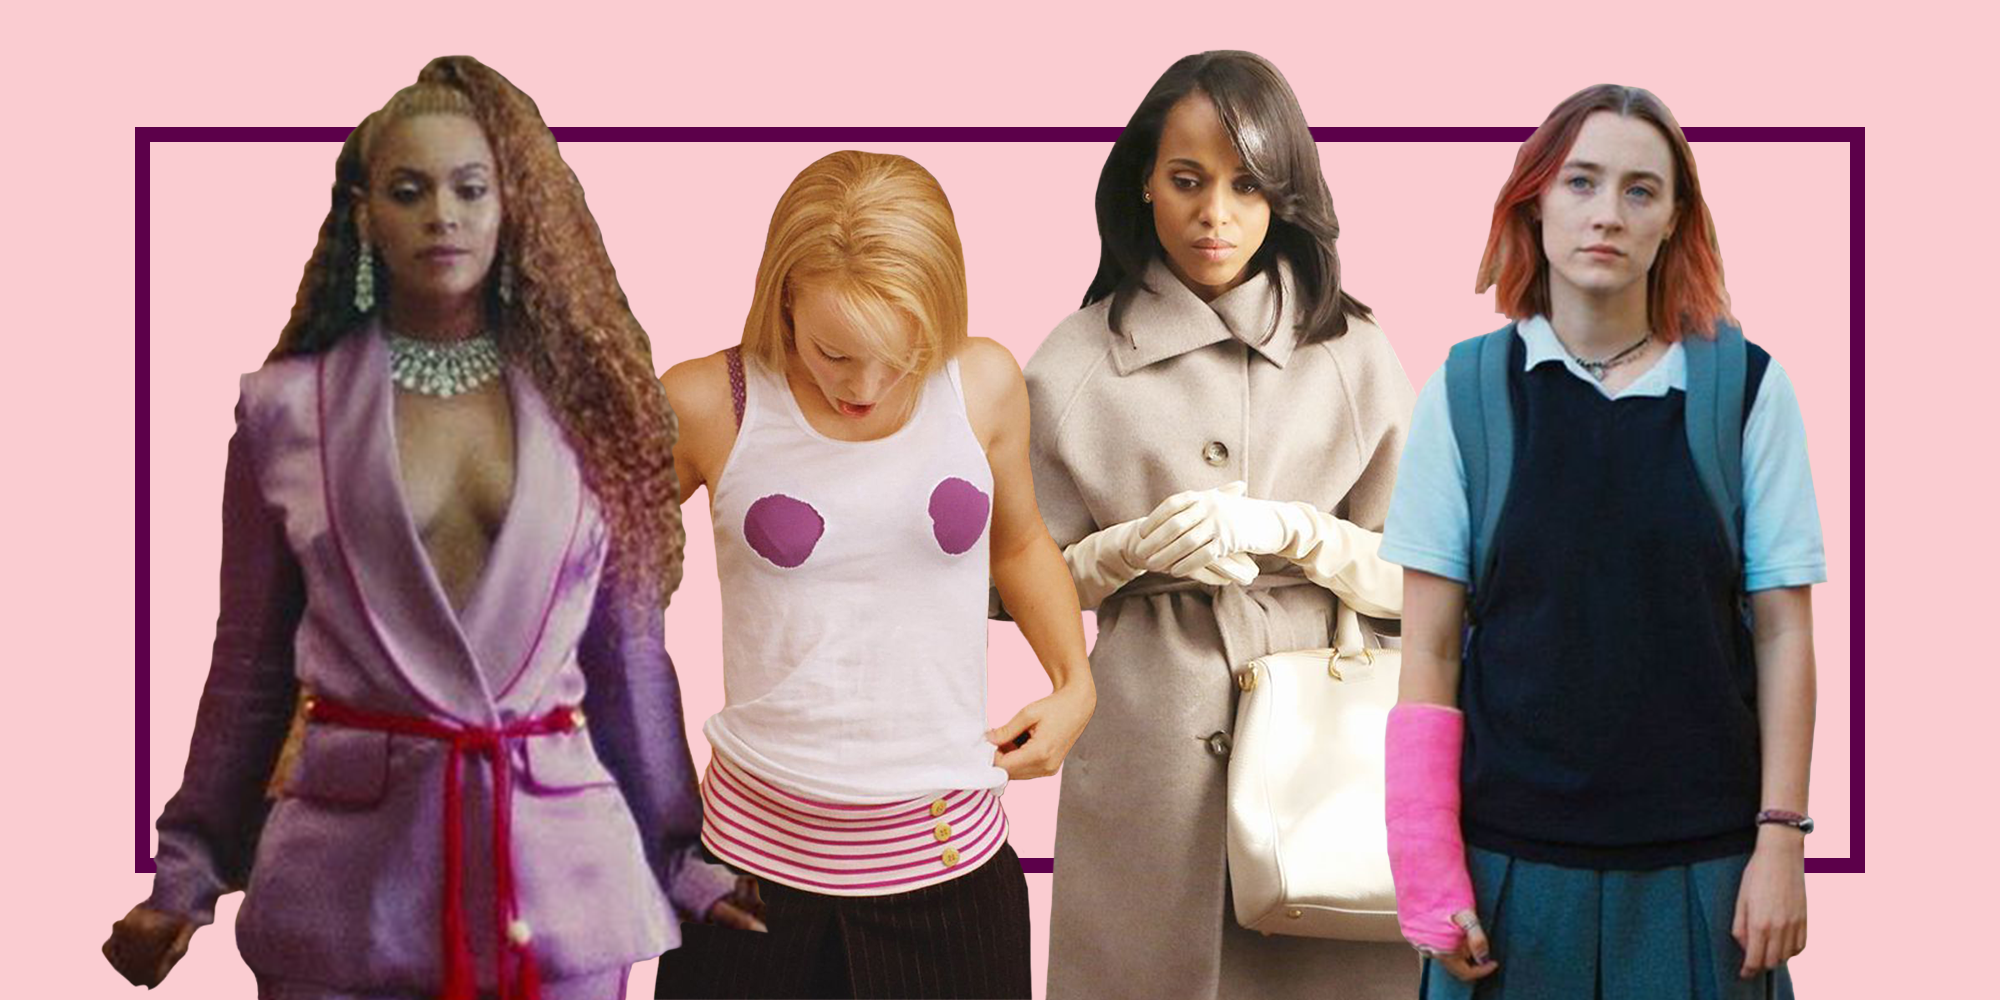 75 Halloween Costume Ideas From TV Shows \u0026 Movies